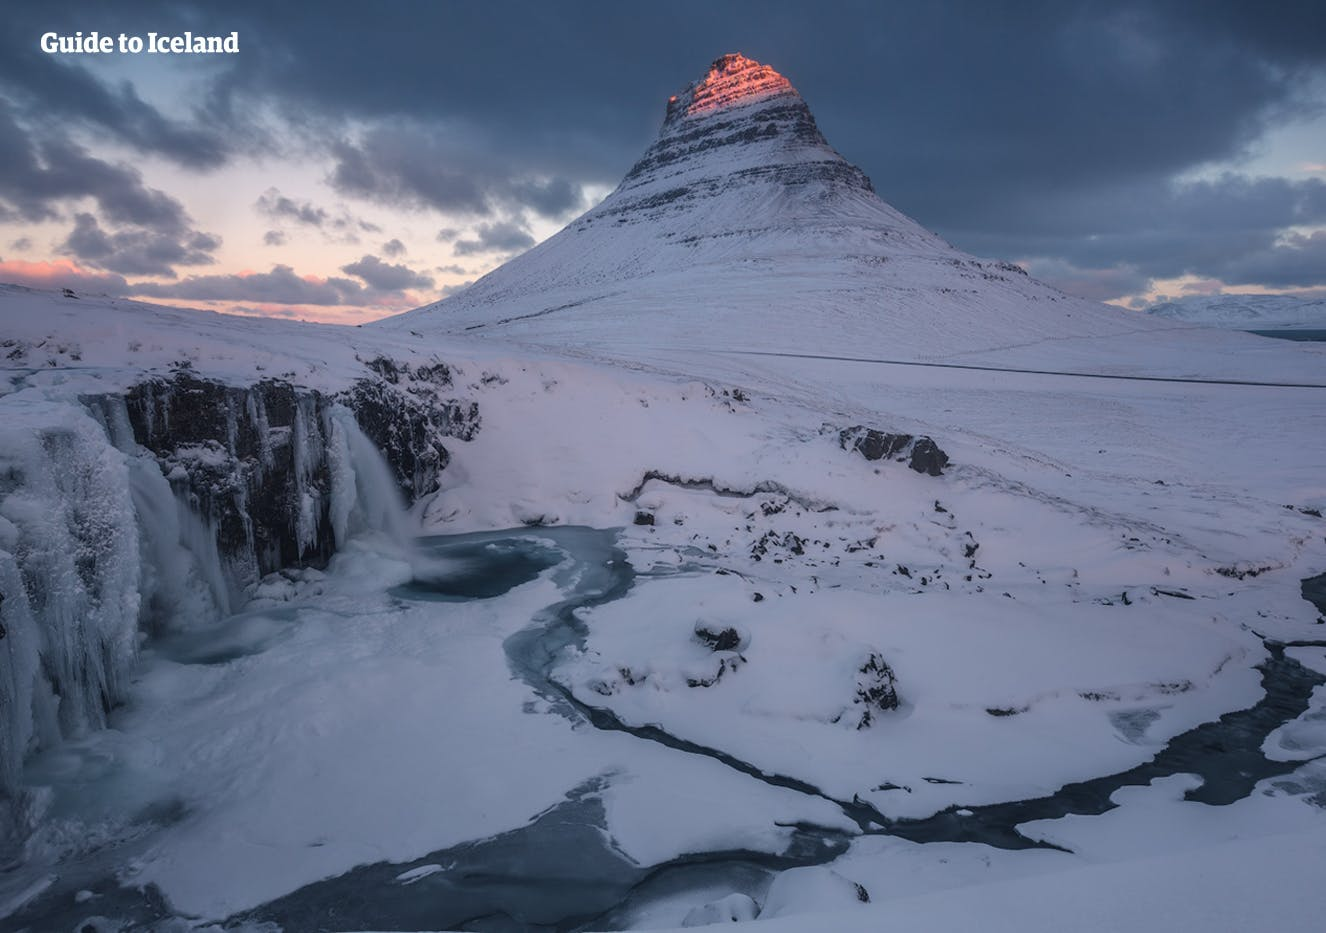 Kirkjufell Mountain on the Snæfellsnes Peninsula, as seen in the cold winter months.